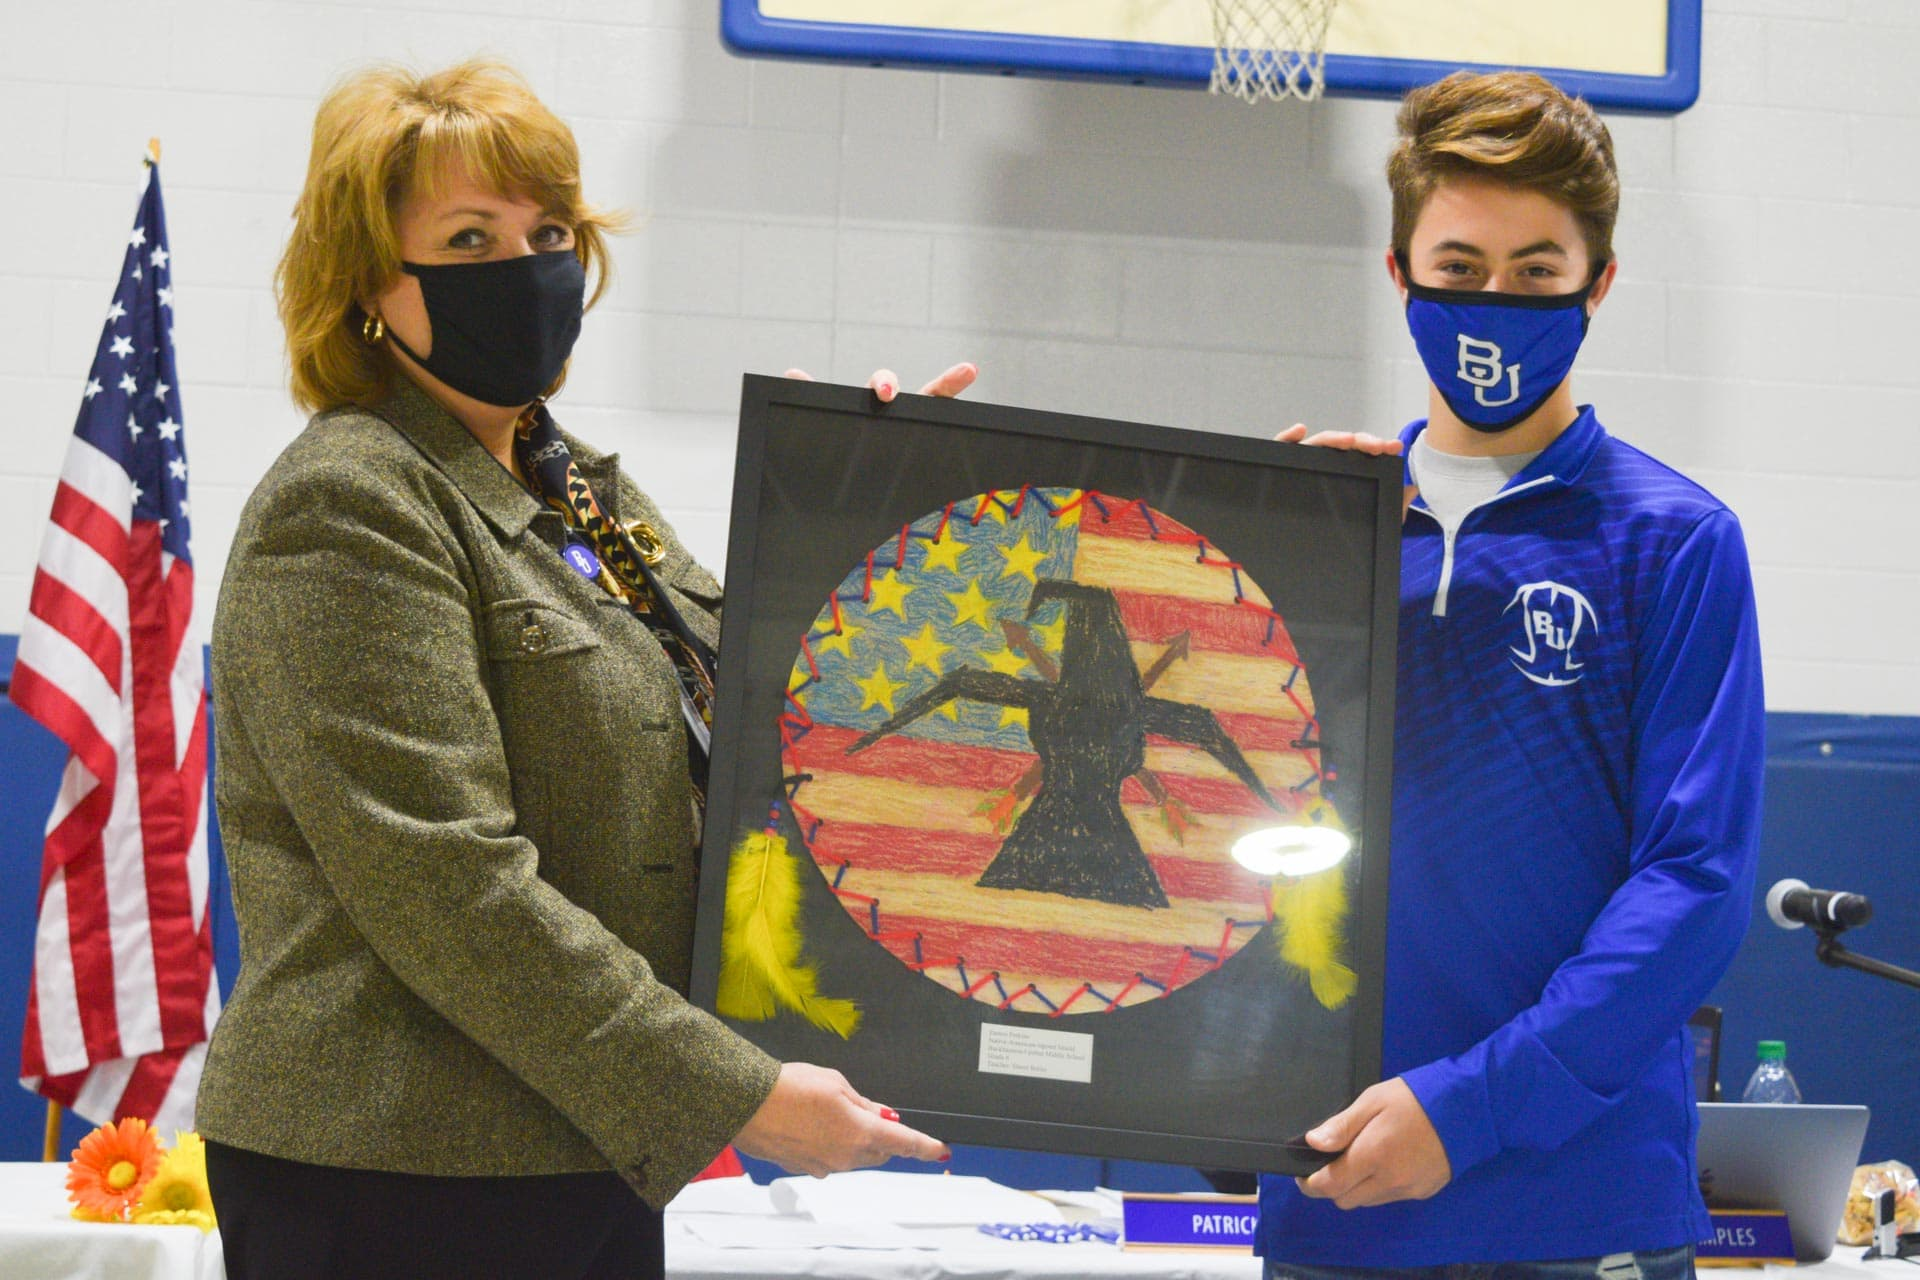 Students' artistic talent gleams as they are awarded Upshur Stars at BOE meeting